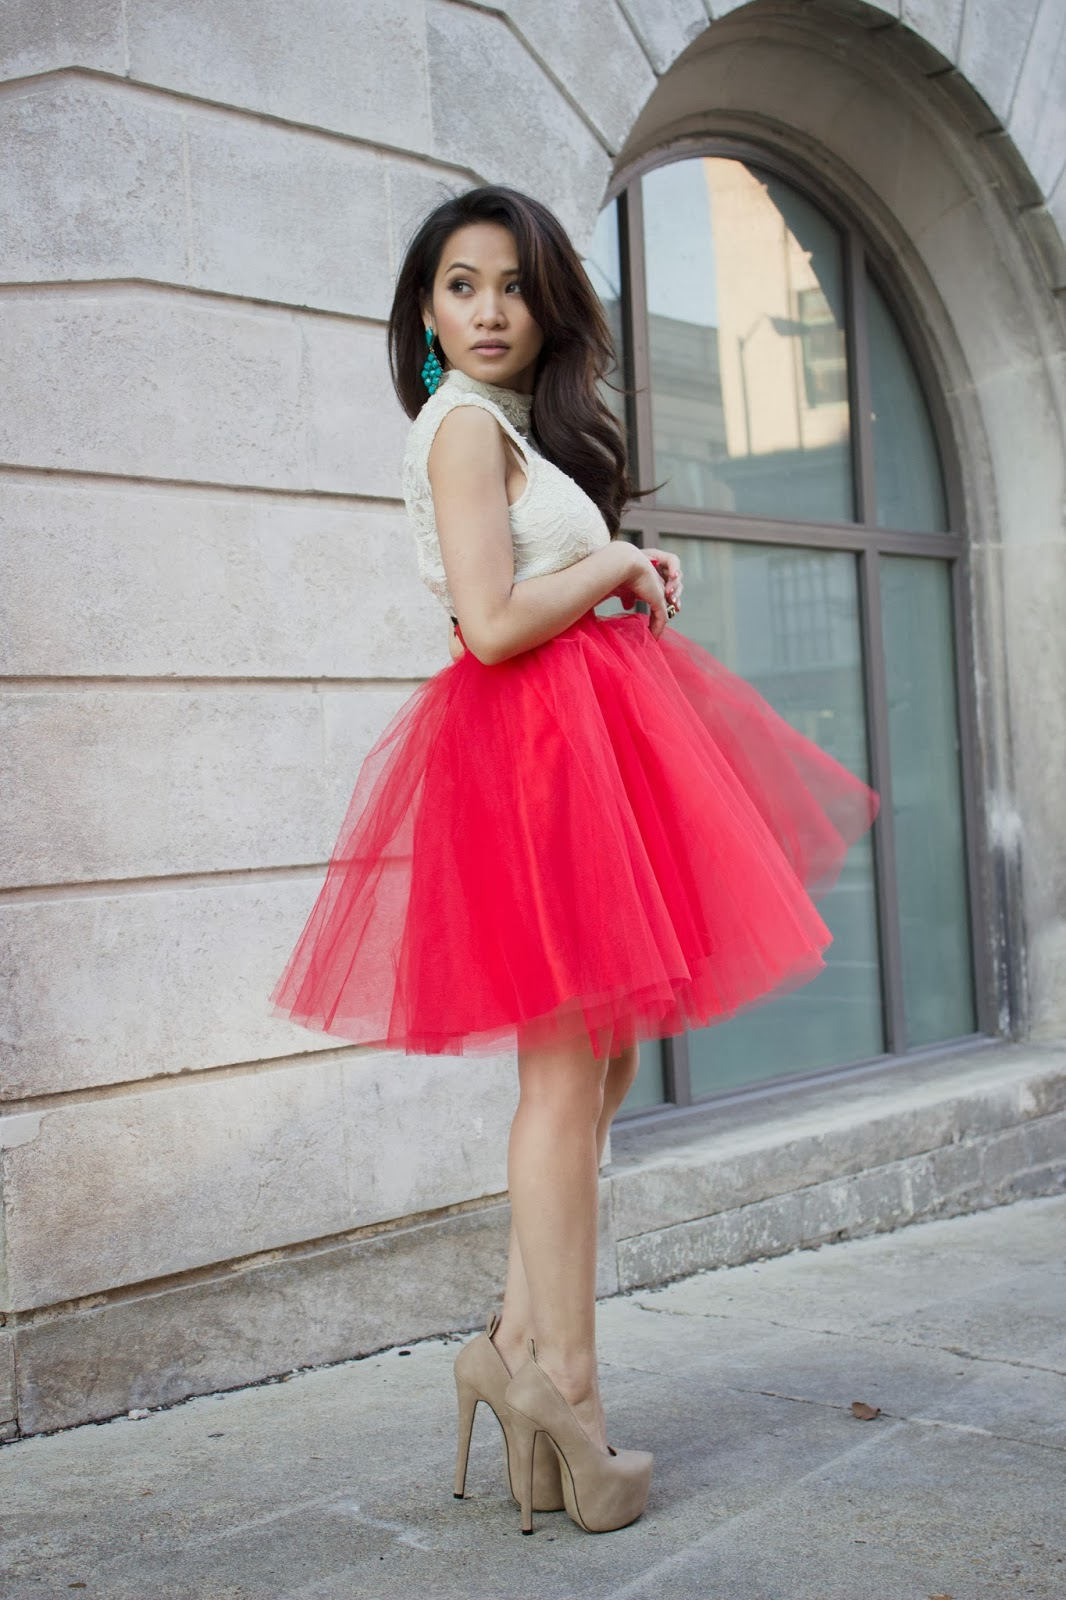 Tulle skirts, tutu skirts, fashion blogger, melba nguyen, tulle skirt pairing, fendi purse, christmas outfit ideas, styling tulle skirts